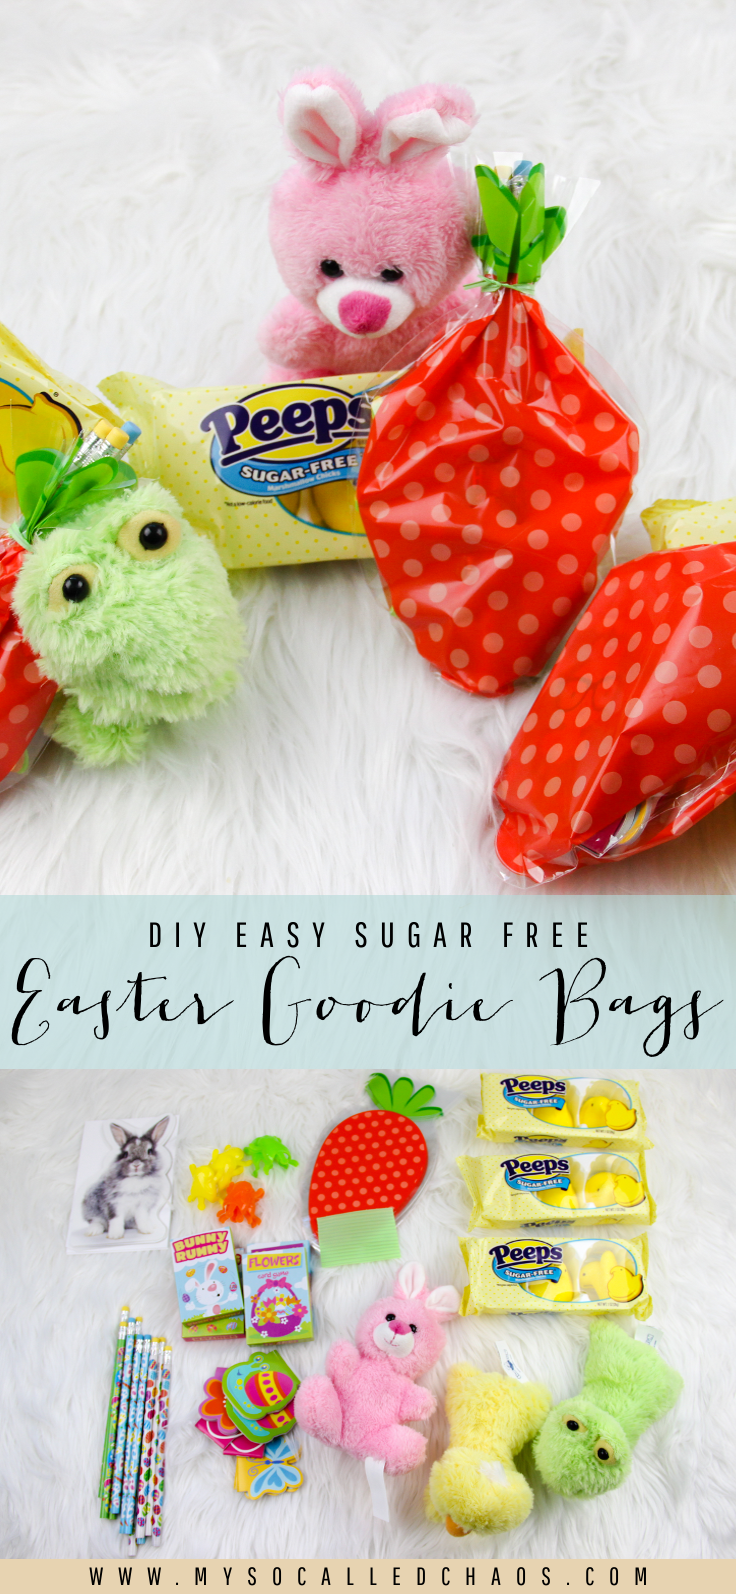 DIY Easy Sugar-Free Easter Goodie Bags with Sugar-Free PEEPS® | Want to give a cute Easter gift without upping the sugar intake? Have a little diabetic who wants to celebrate? These easy DIY Sugar Free Easter Gift Bags with PEEPS® are just the thing!